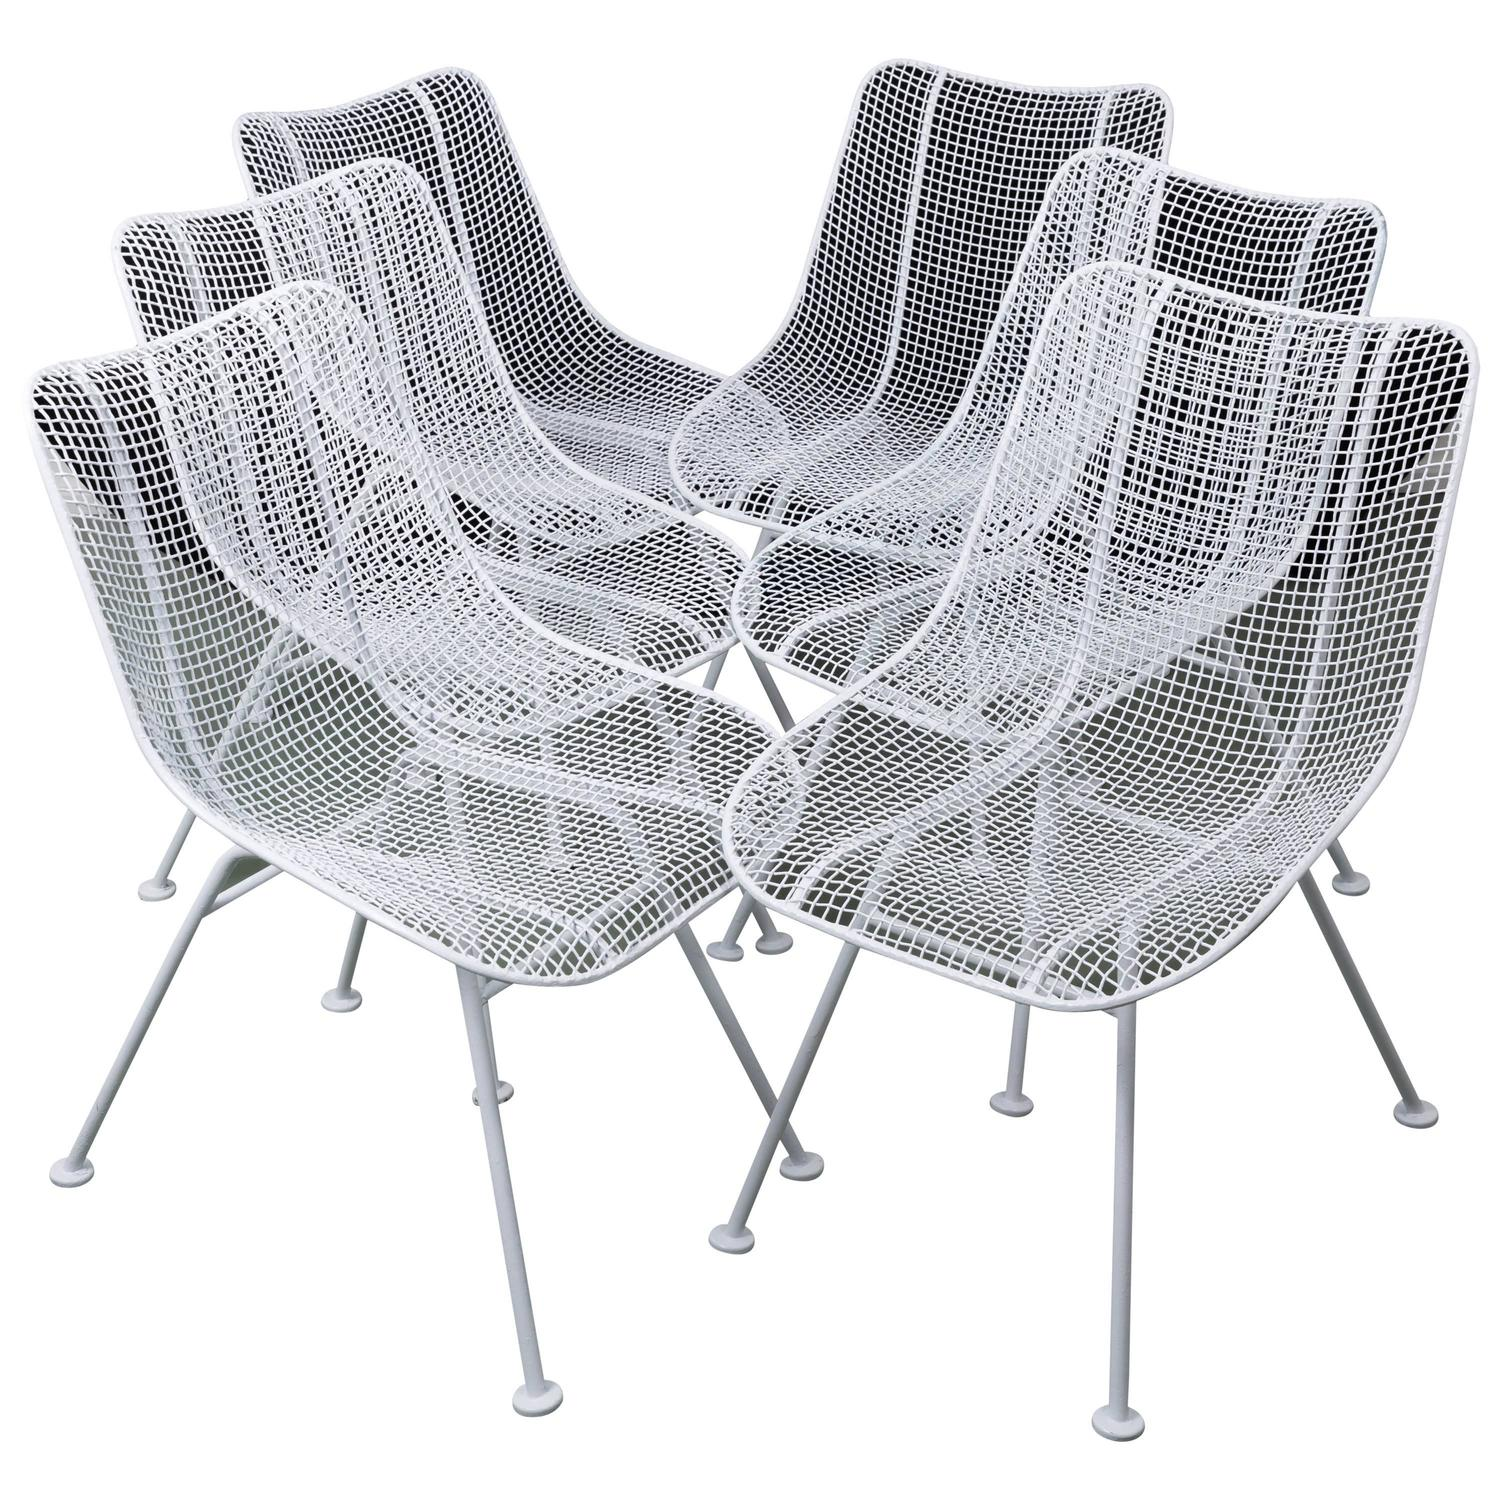 Delicieux Woodard Mid Century Modern Wire Mesh Chairs At 1stdibs